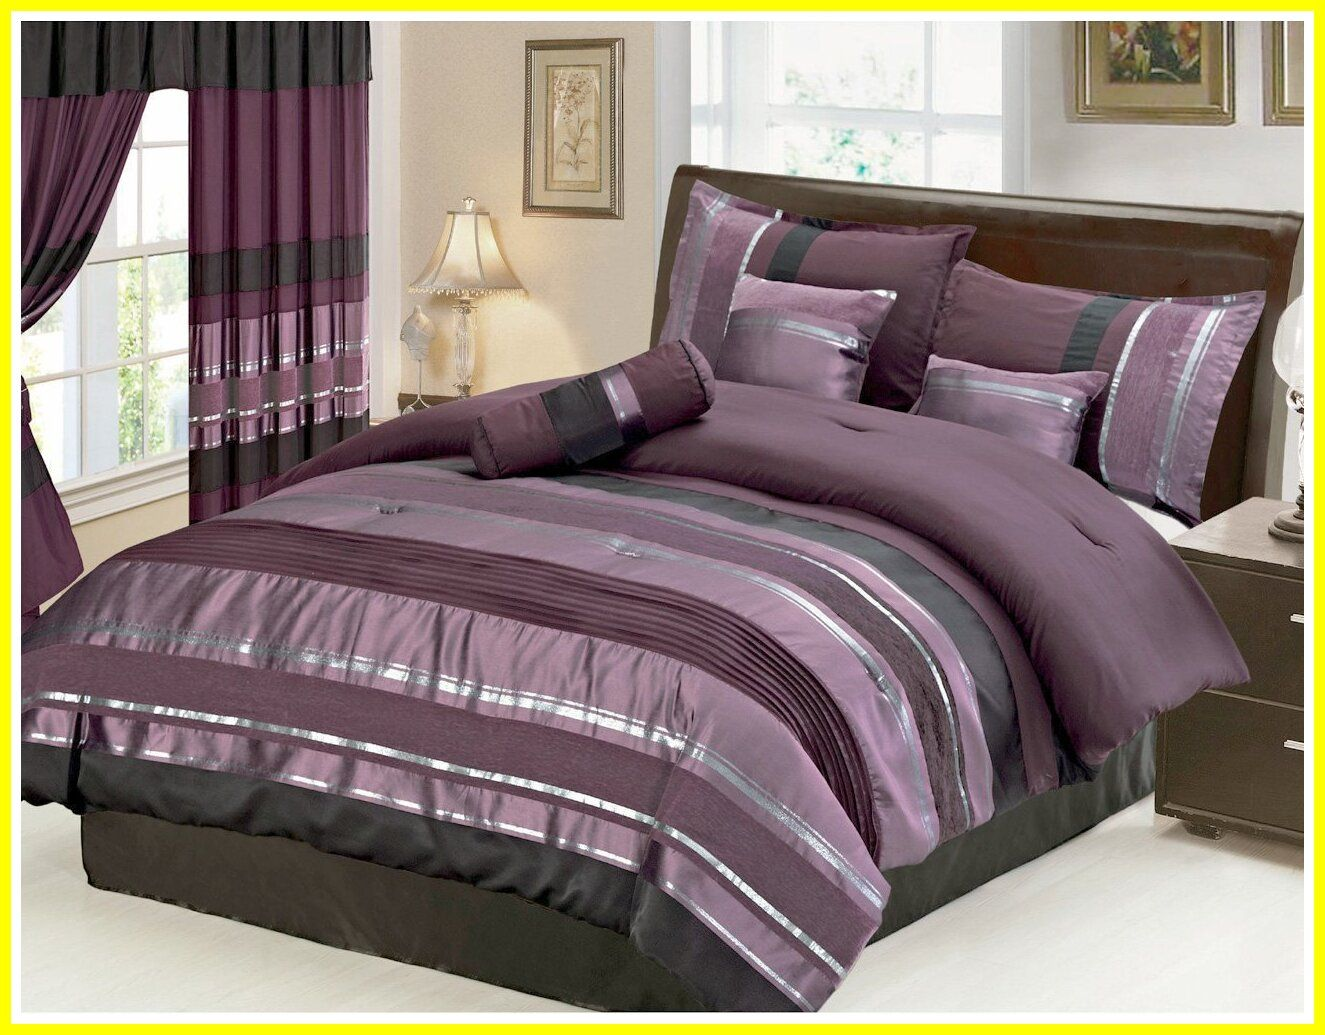 101 Reference Of Sheets For Twin Bed Amazon In 2020 Twin Bed Twin Mattress Black Sheets